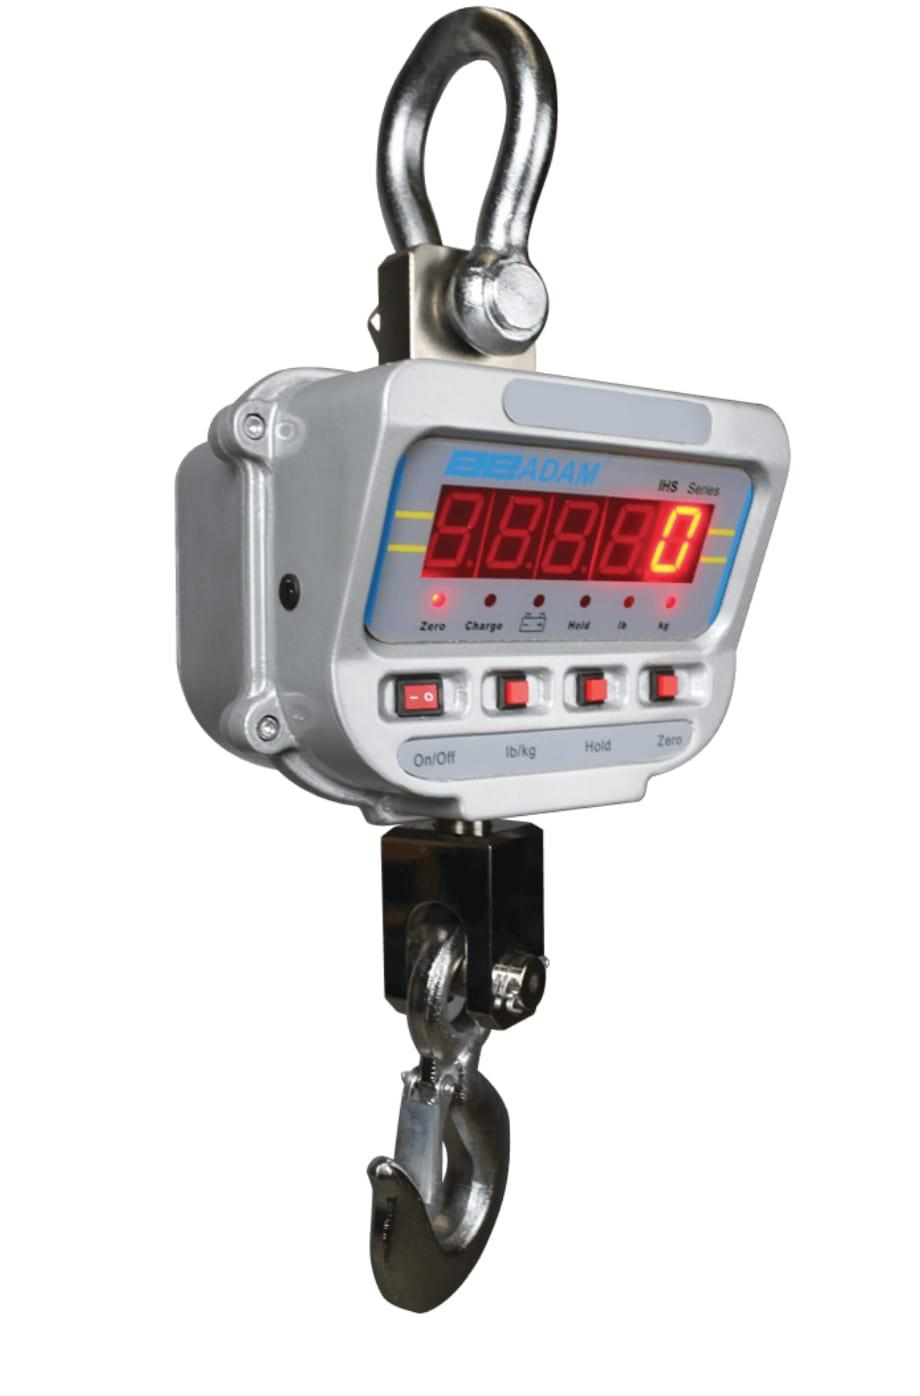 Adam Equipment IHS Crane Scales - IHS 10a